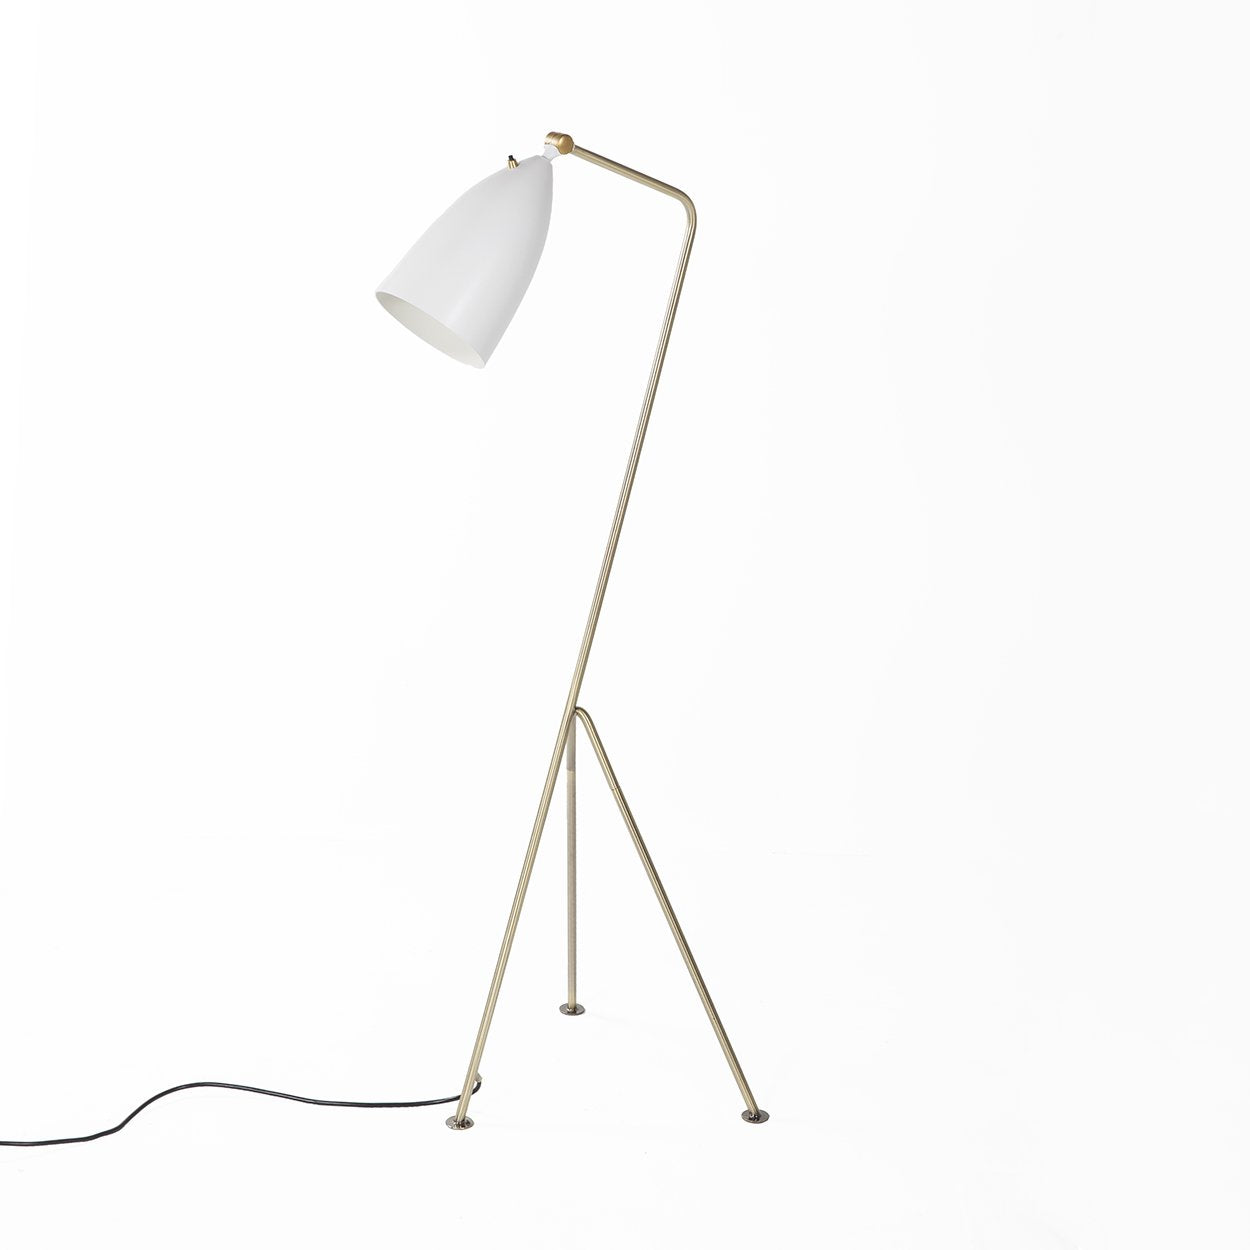 [LBF001BRSWHTNEW] The Grasshopper Floor Lamp